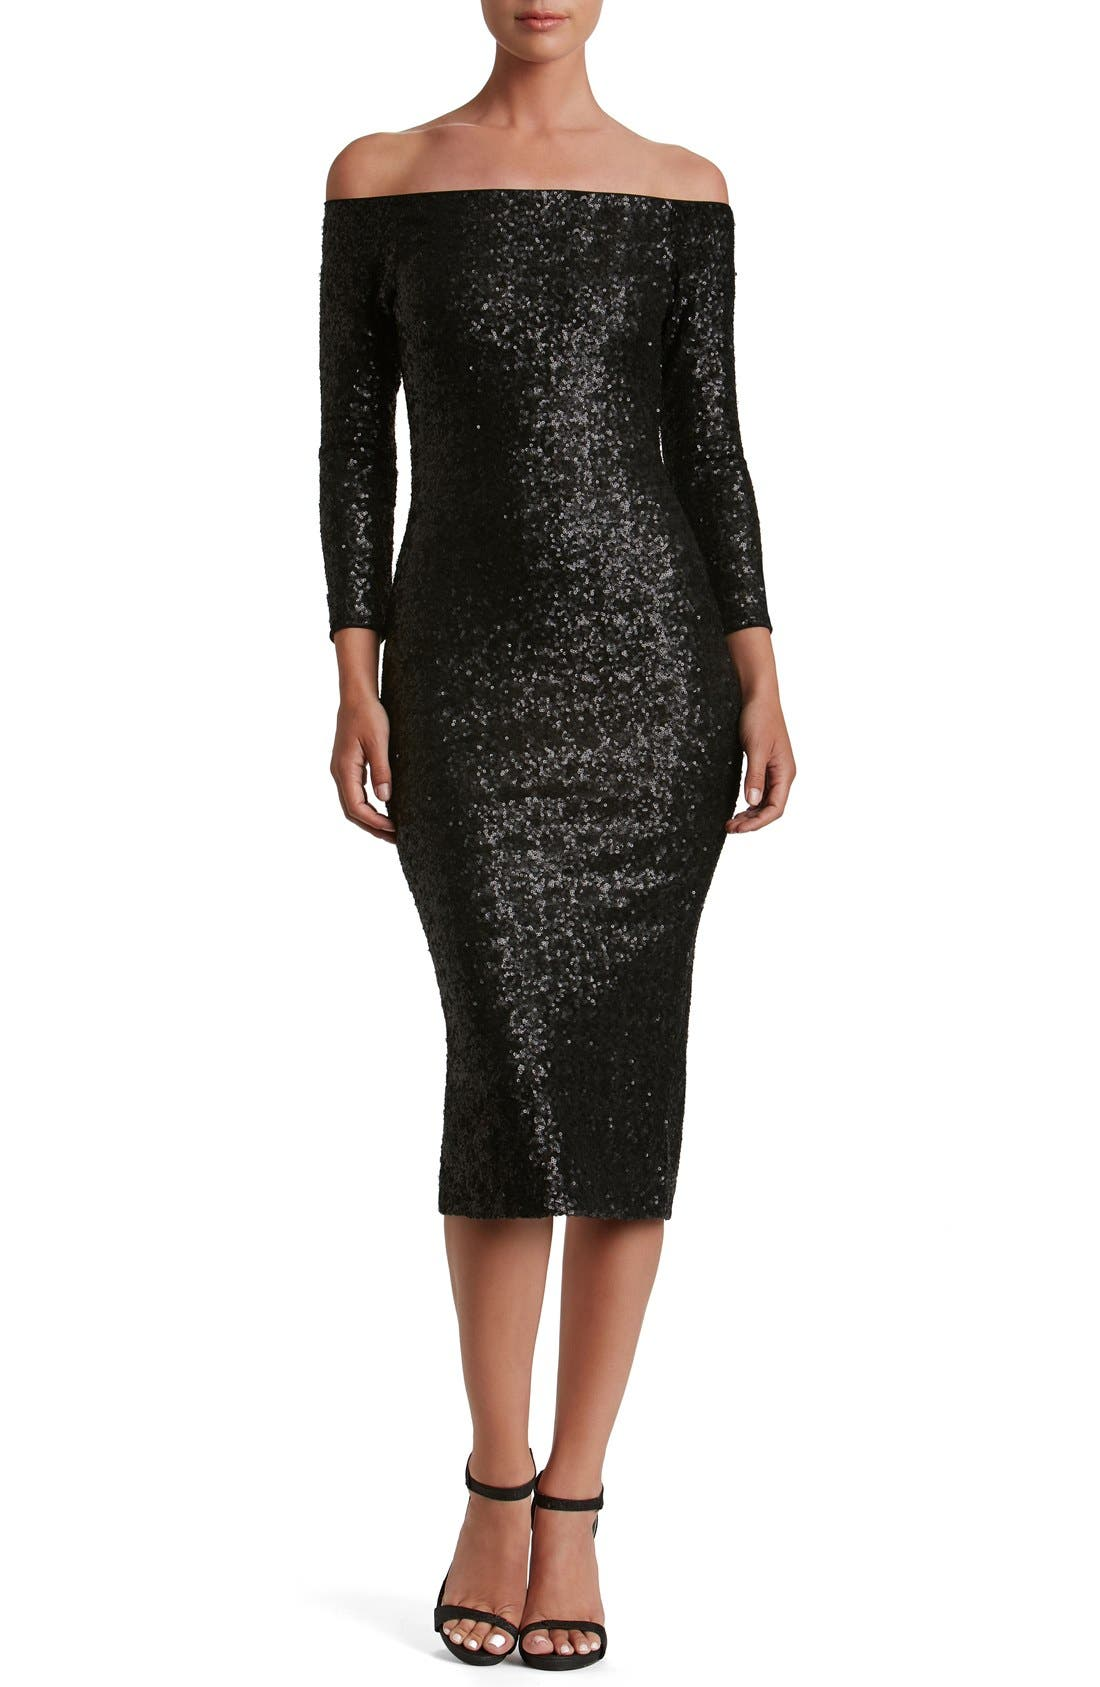 Alternate Image 1 Selected - Dress the Population Addison Sequin Midi Dress